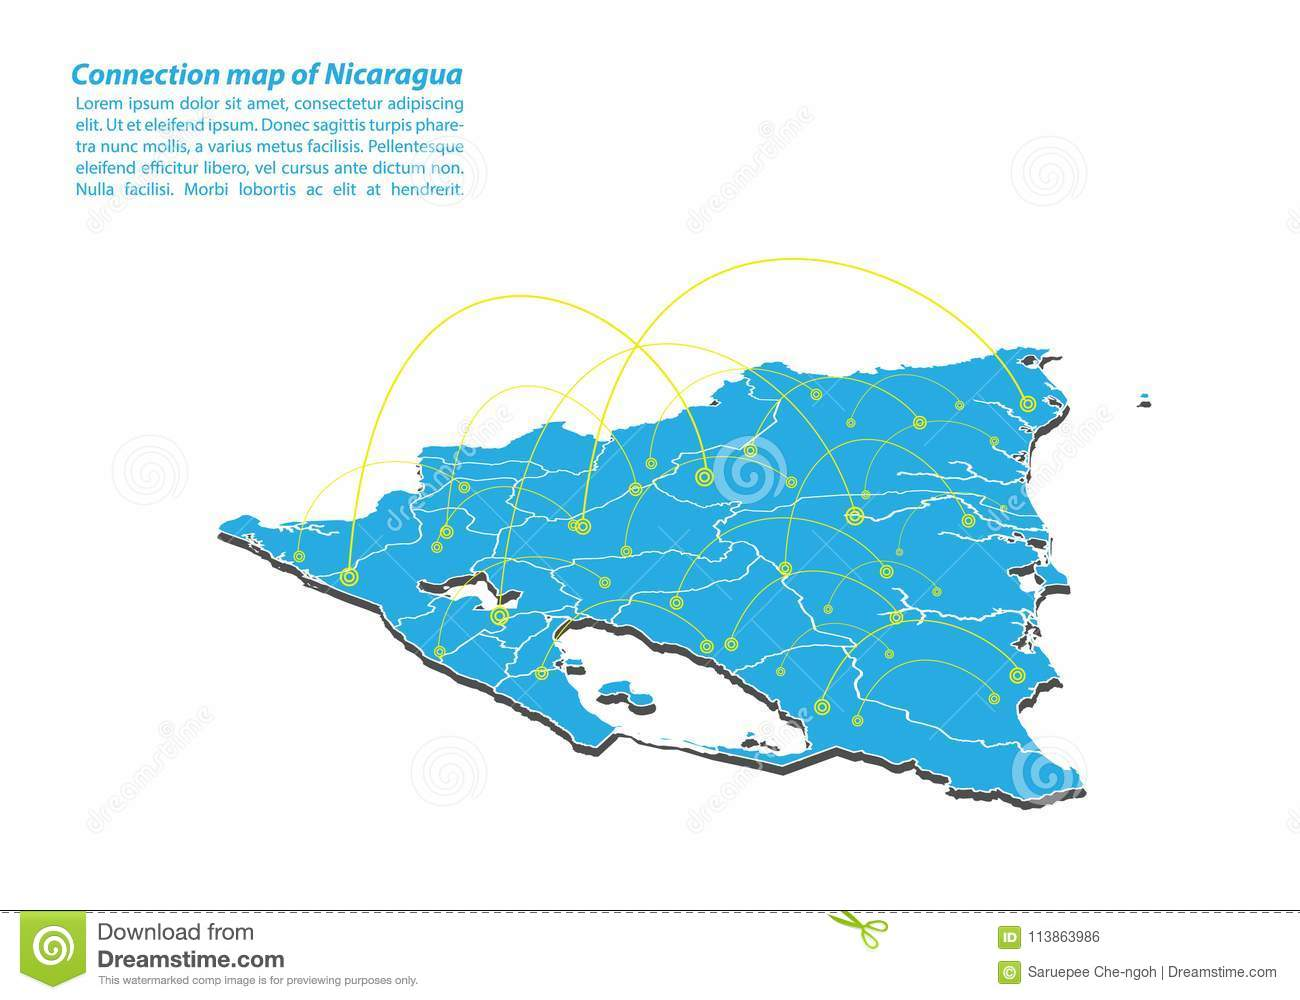 Modern of nicaragua Map connections network design, Best Internet Concept of nicaragua map business from concepts series